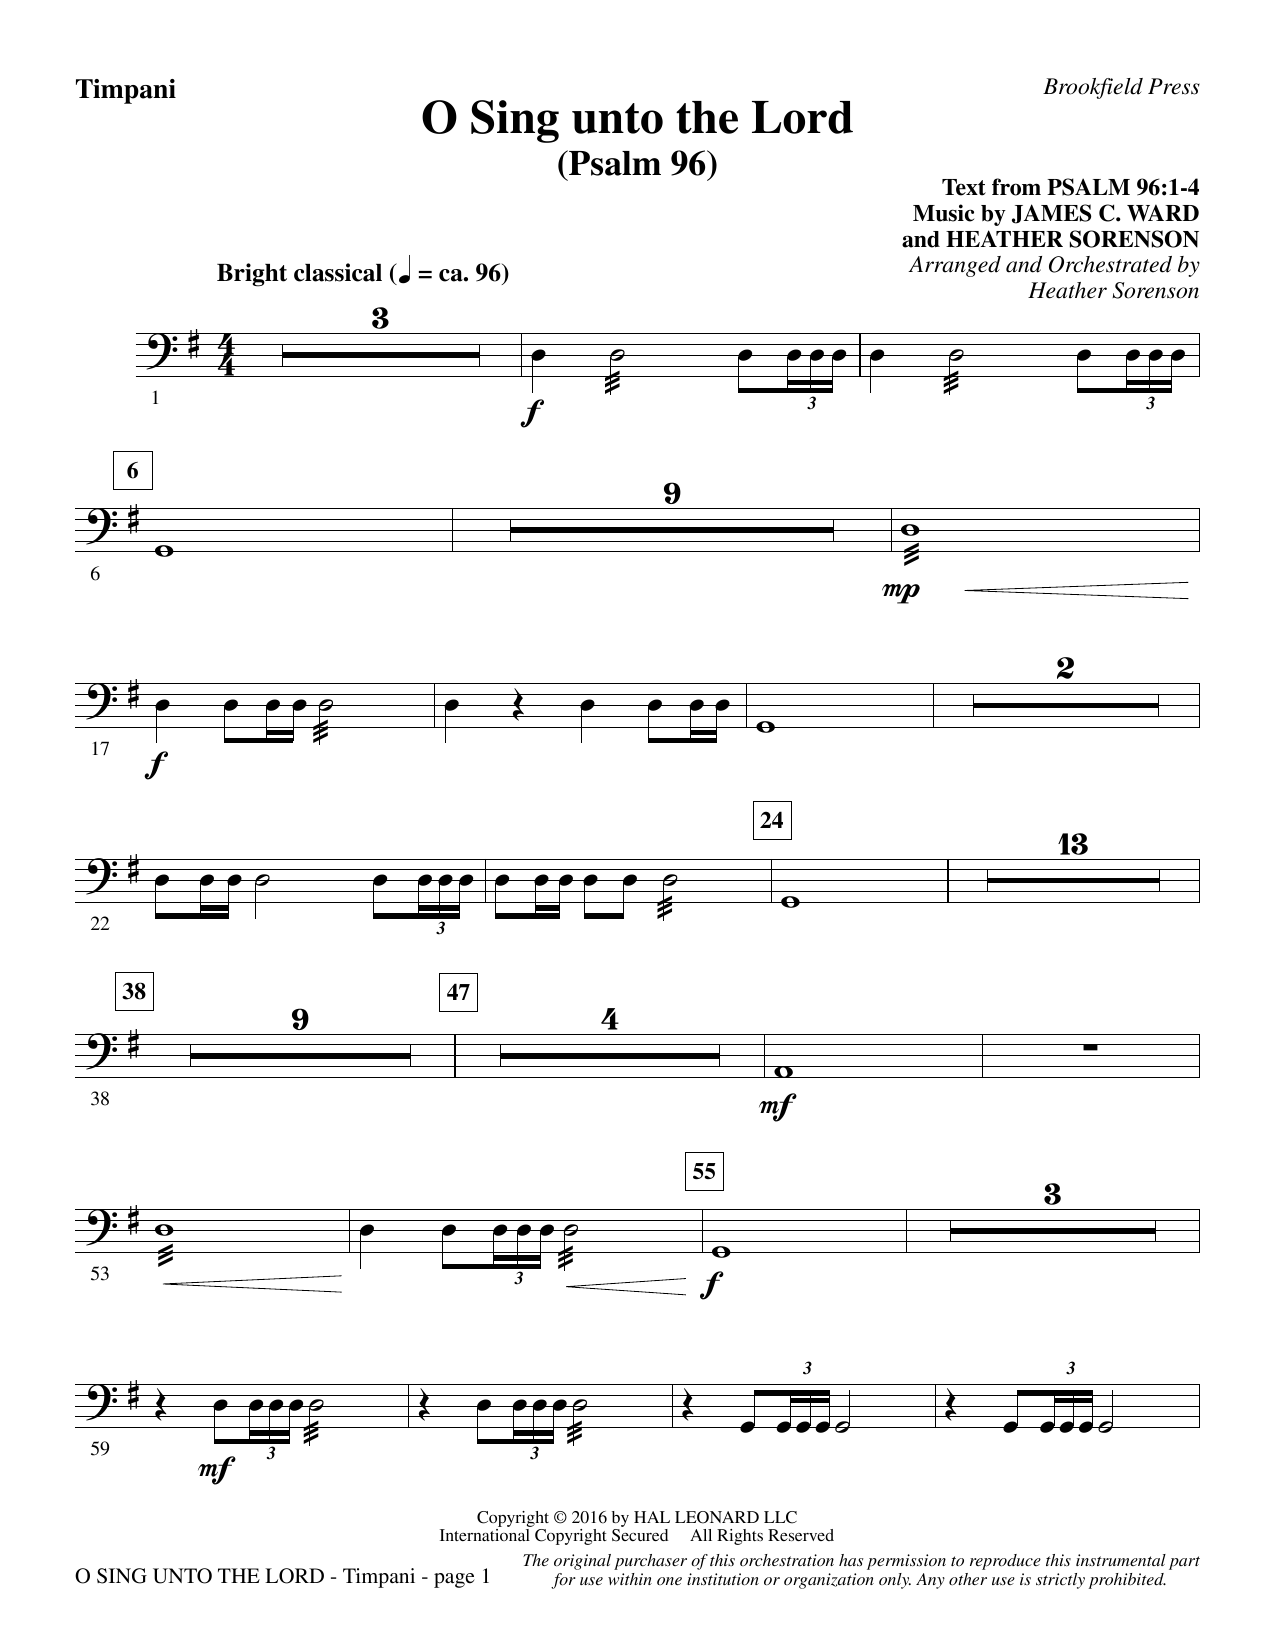 O Sing Unto the Lord - Timpani Sheet Music